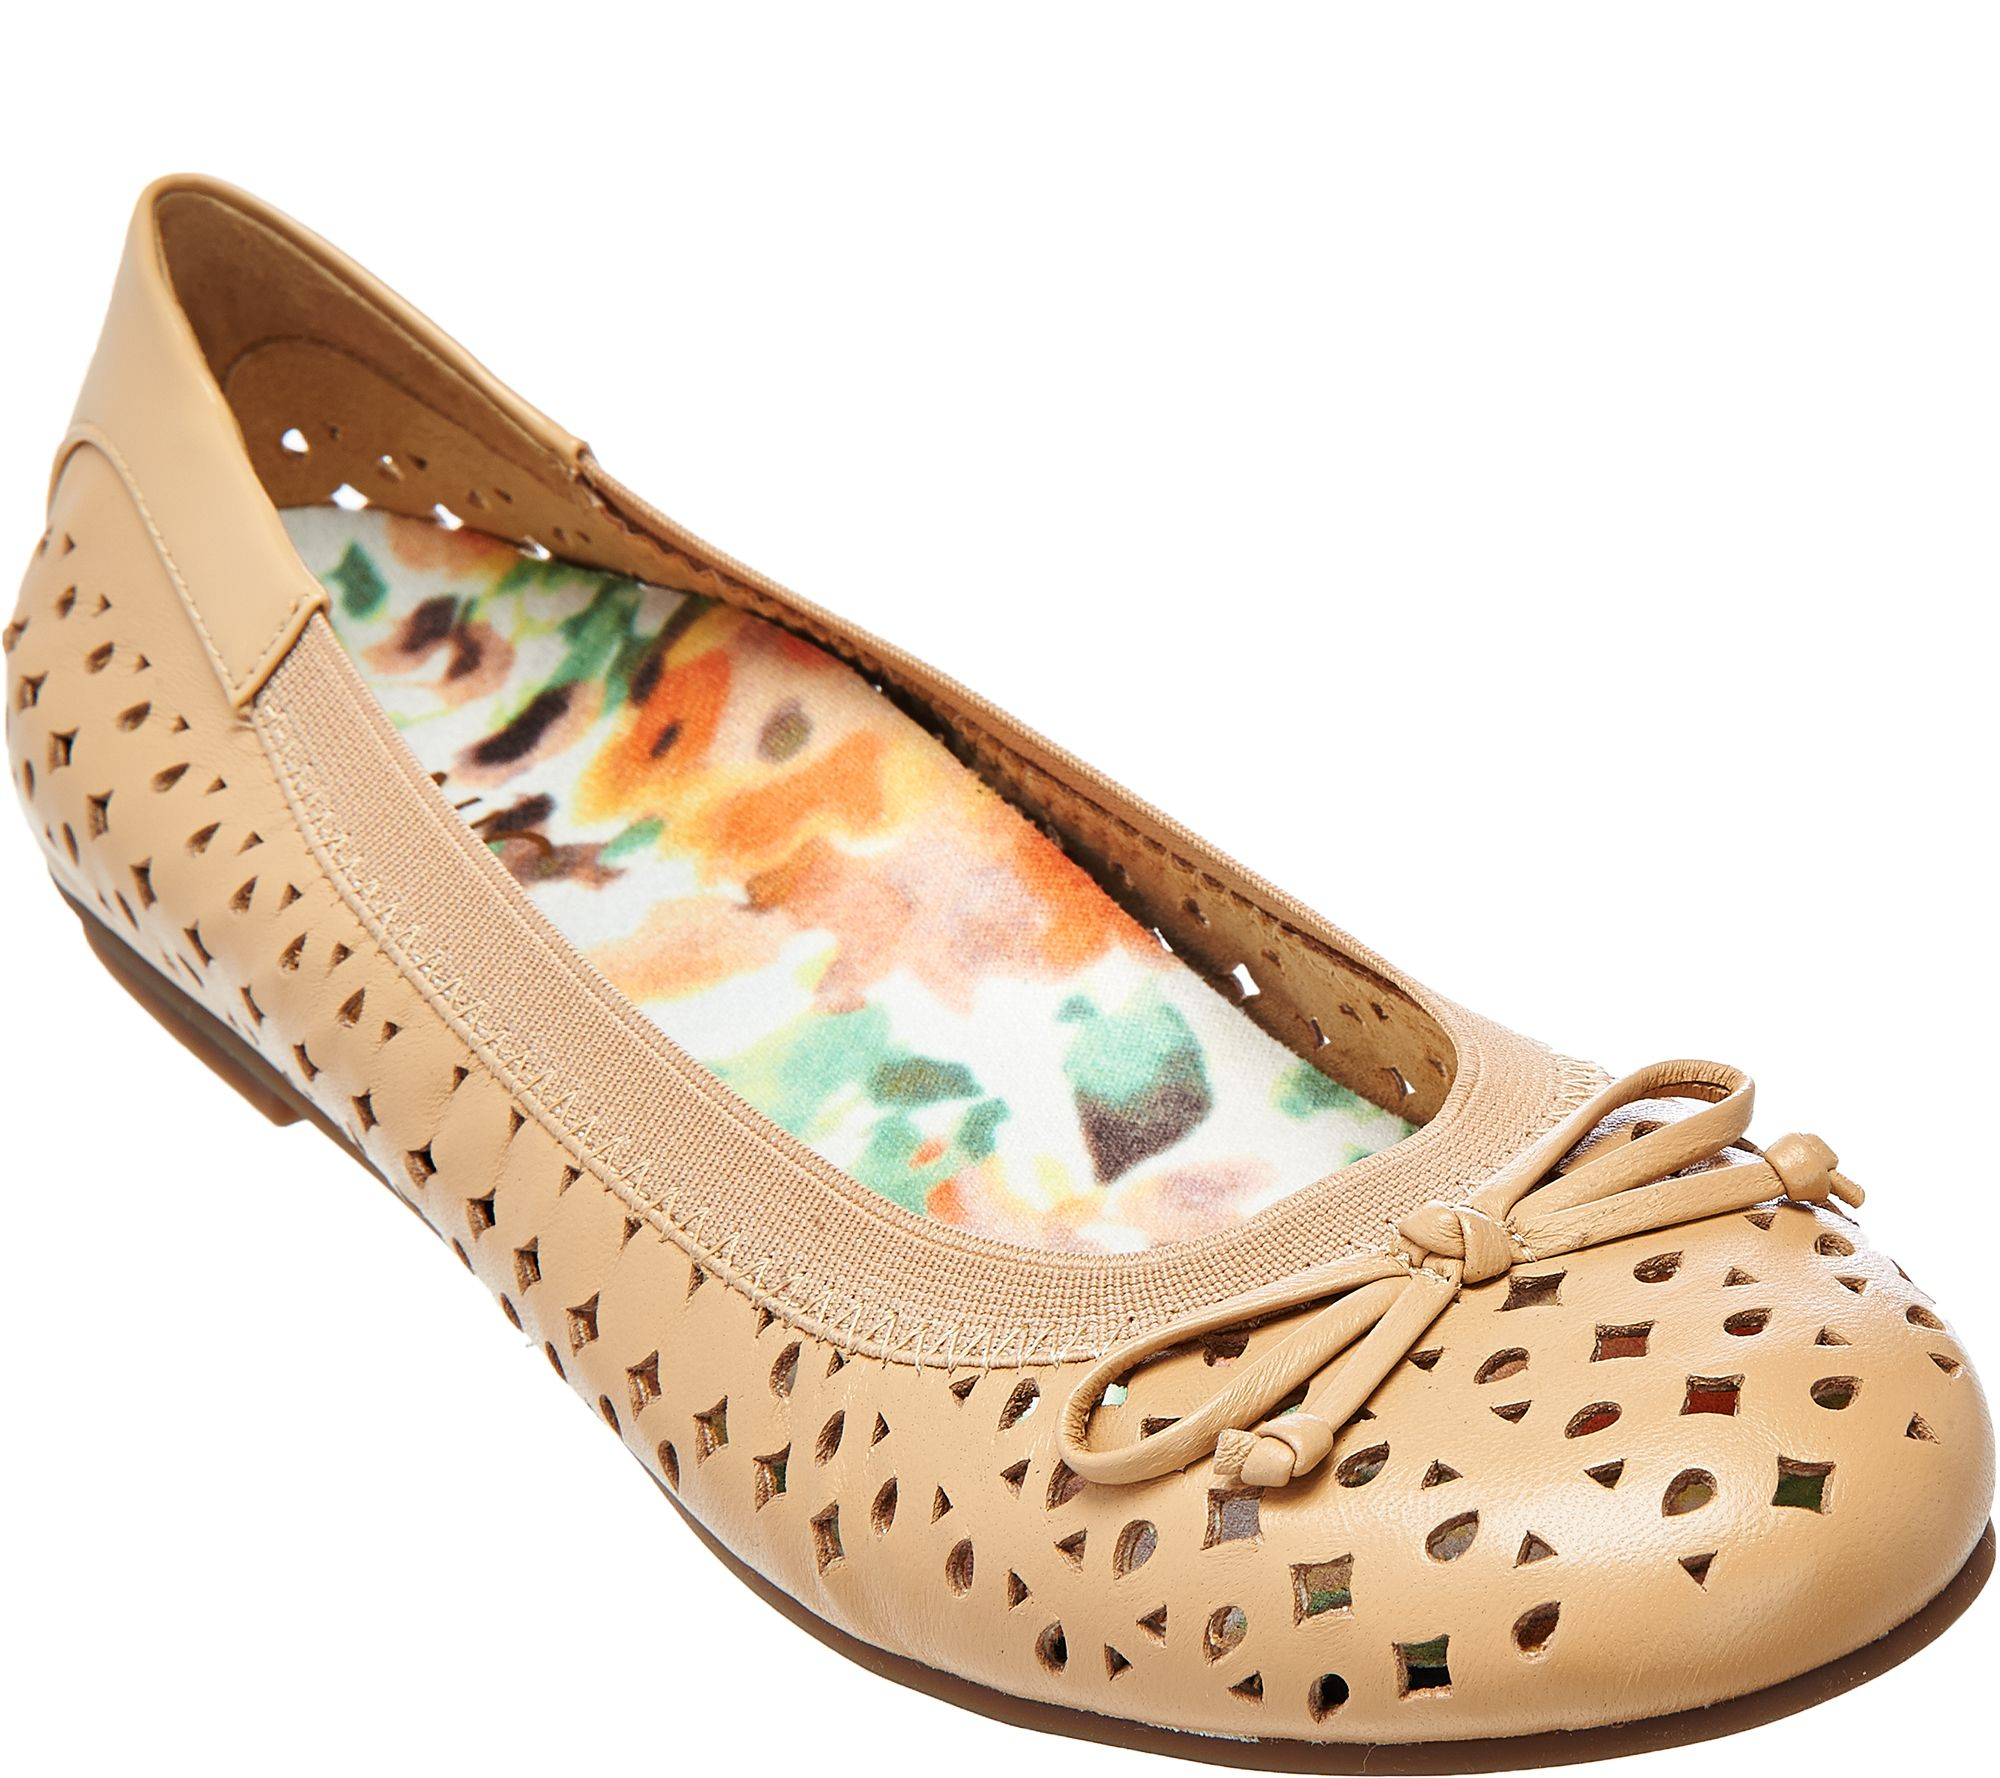 afdbdd117971 Vionic Orthotic Leather Perforated Flats - Surin - Page 1 — QVC.com